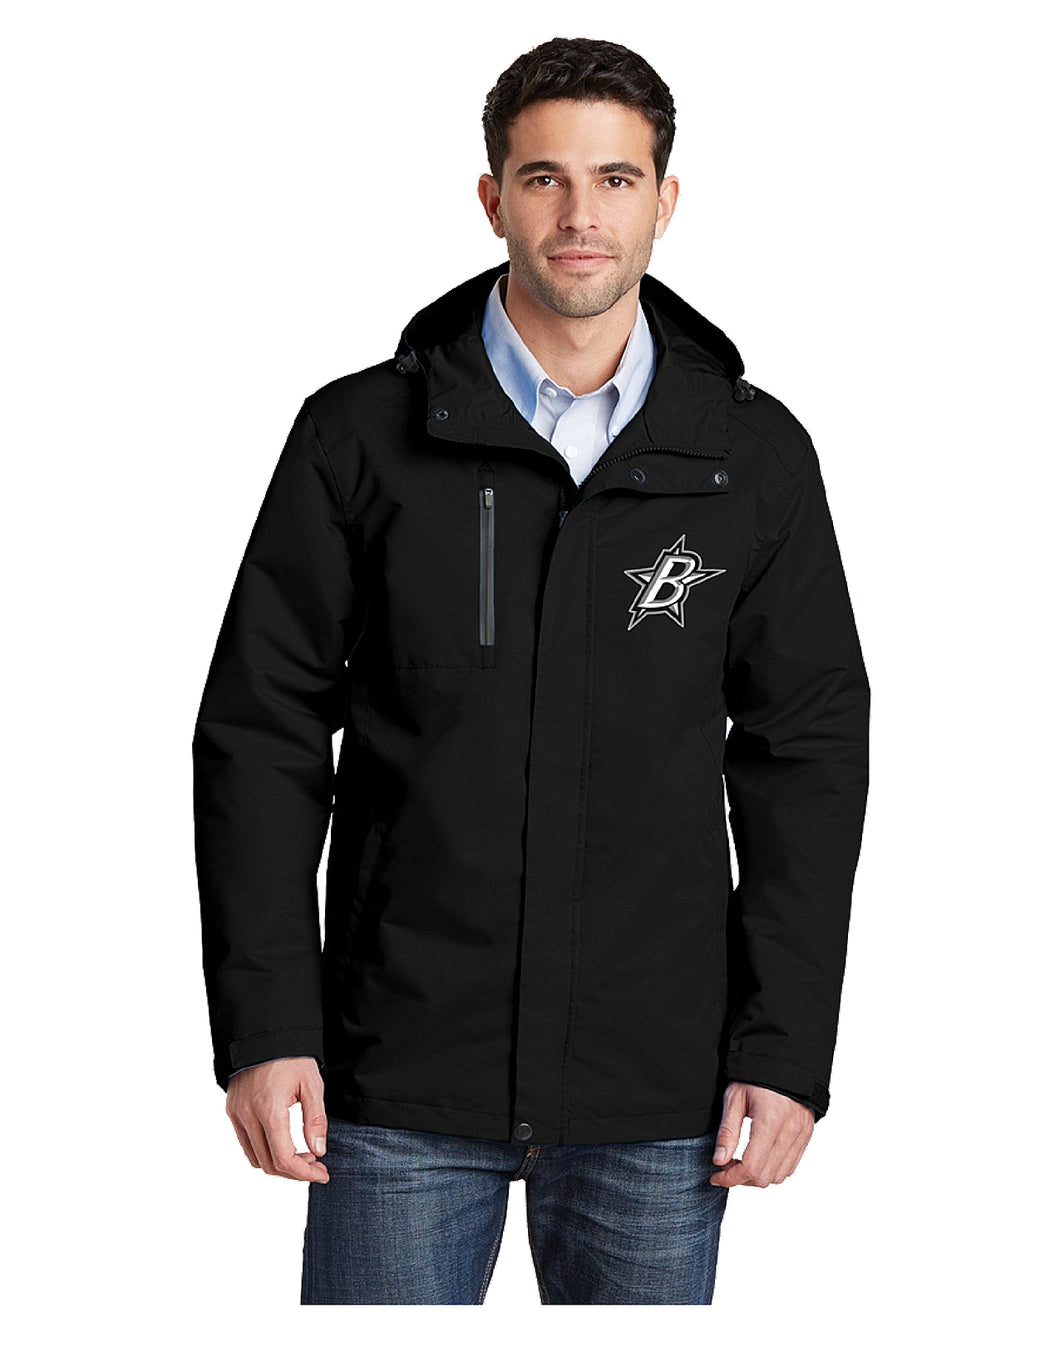 Black Stars Port Authority® All-Conditions Jacket Black With Embroidered Black Stars